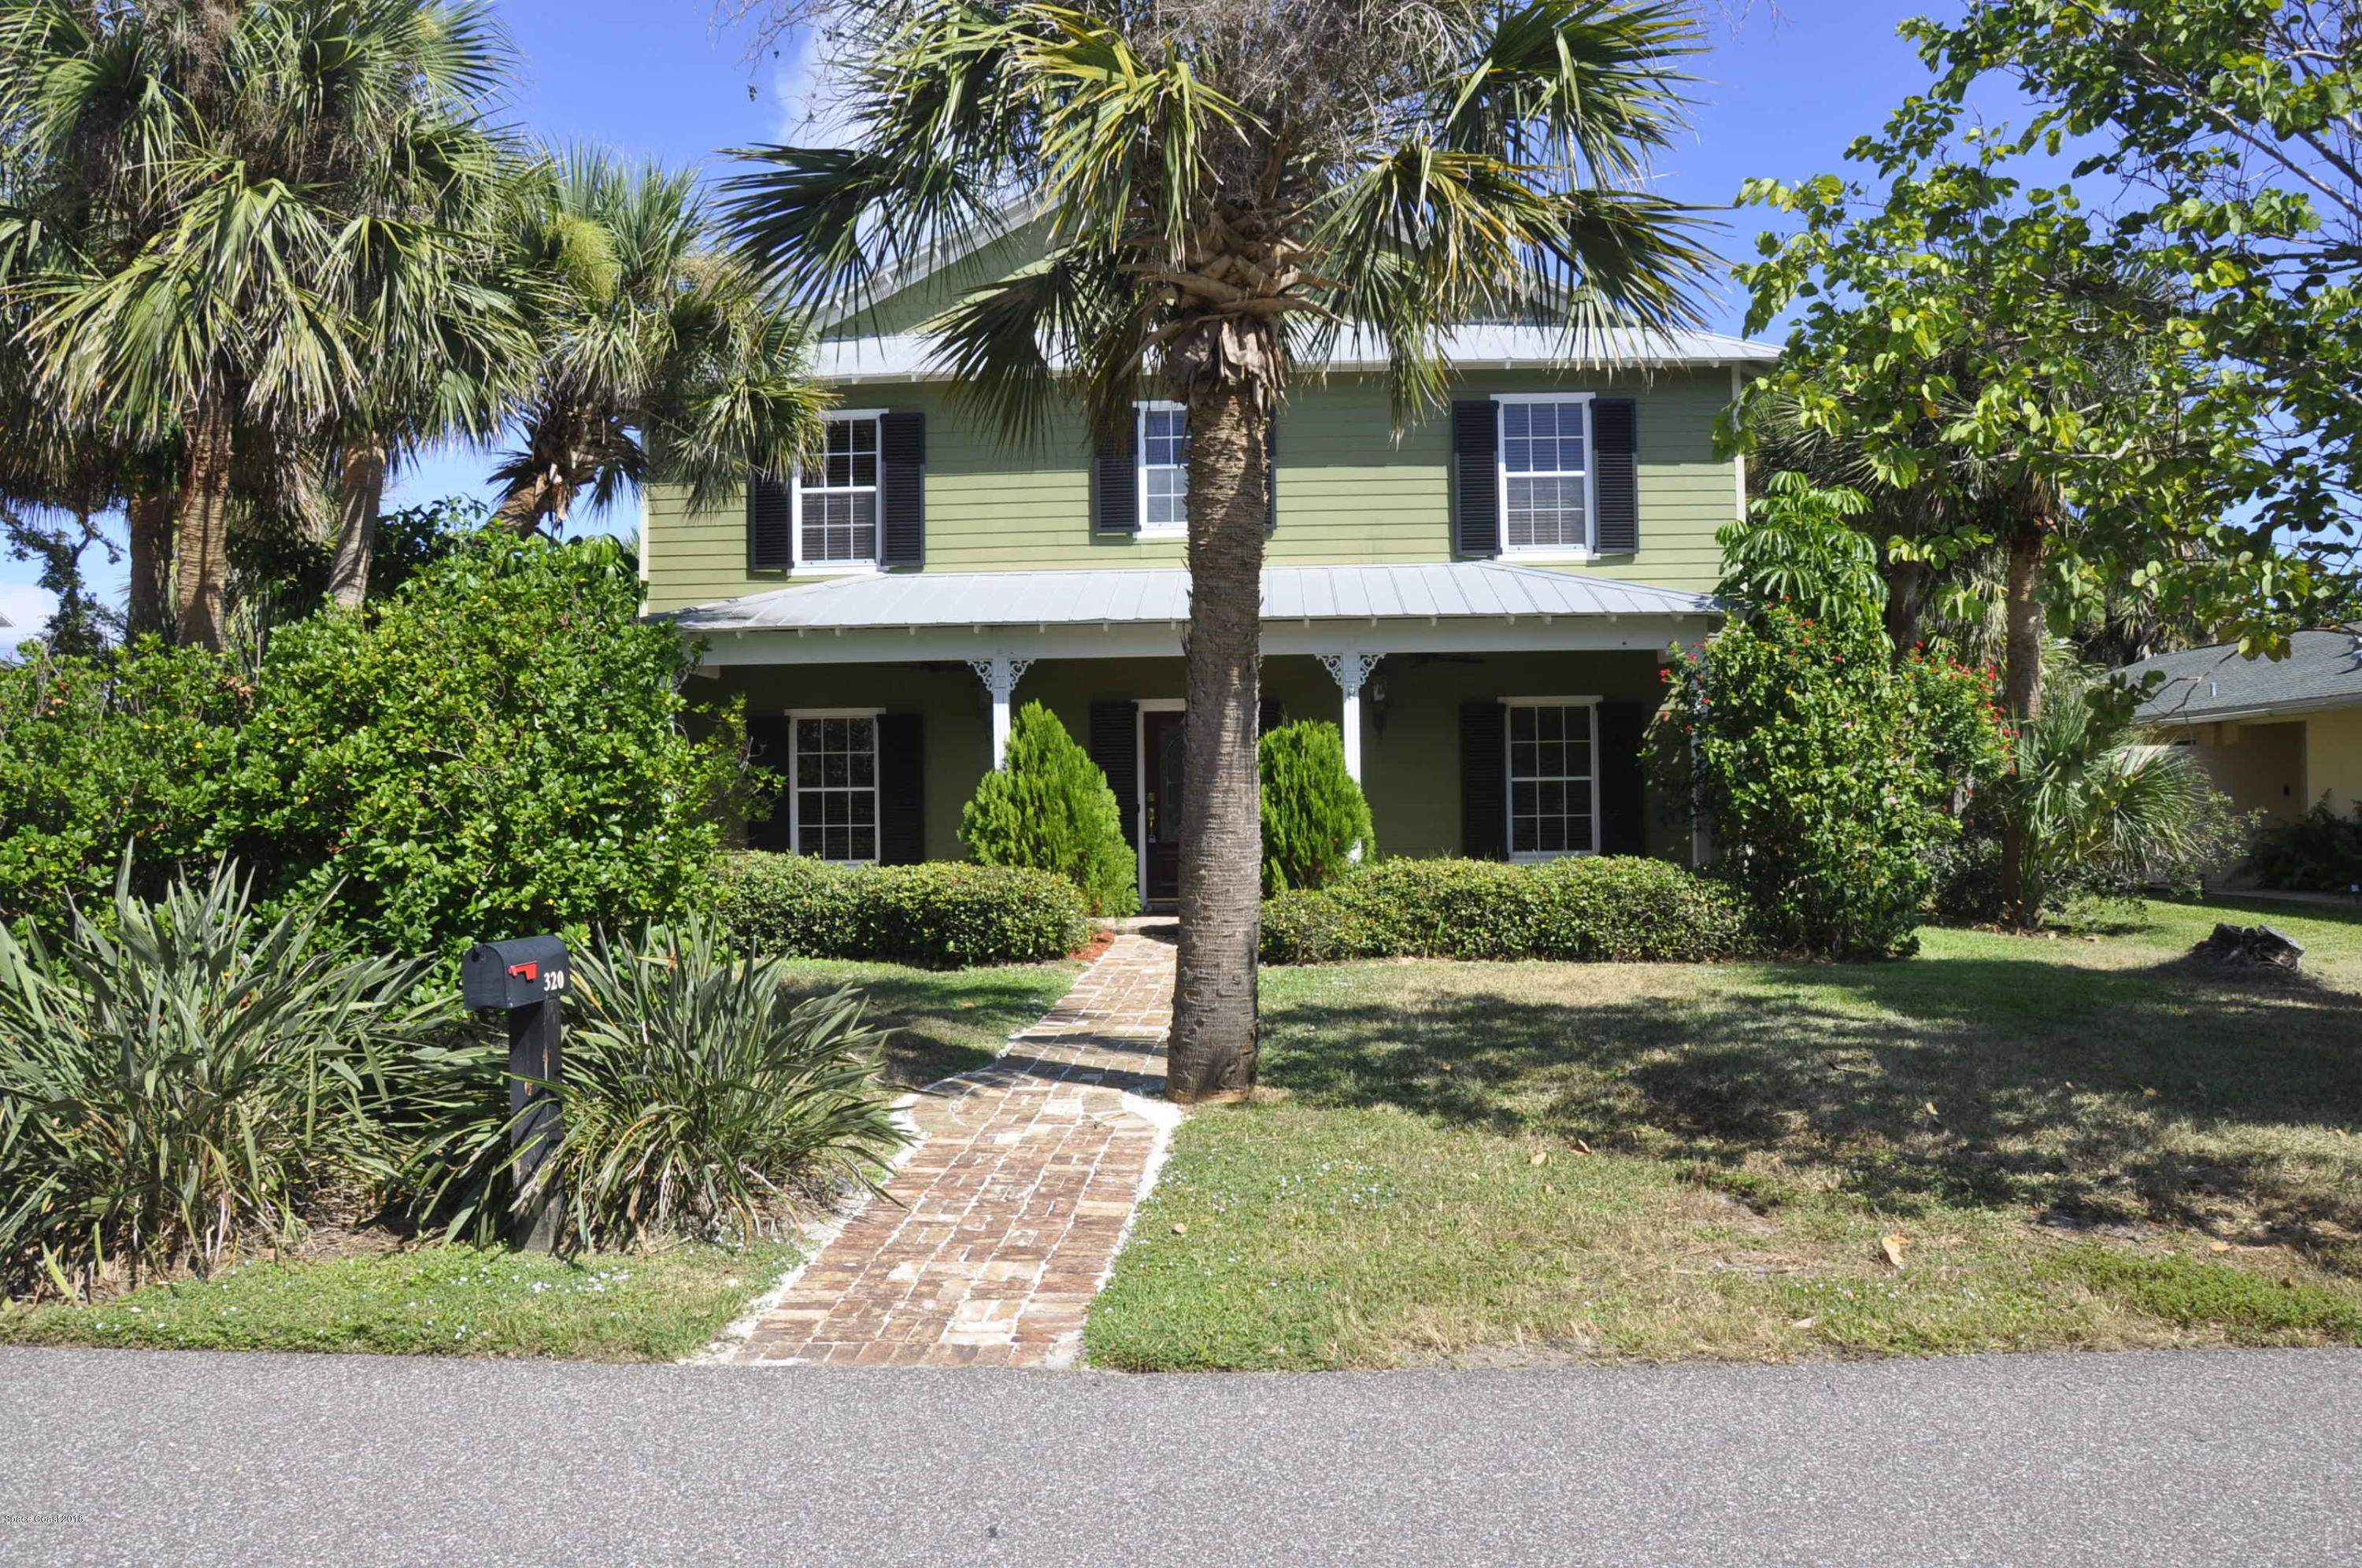 Single Family Home for Rent at 320 2nd 320 2nd Melbourne Beach, Florida 32951 United States